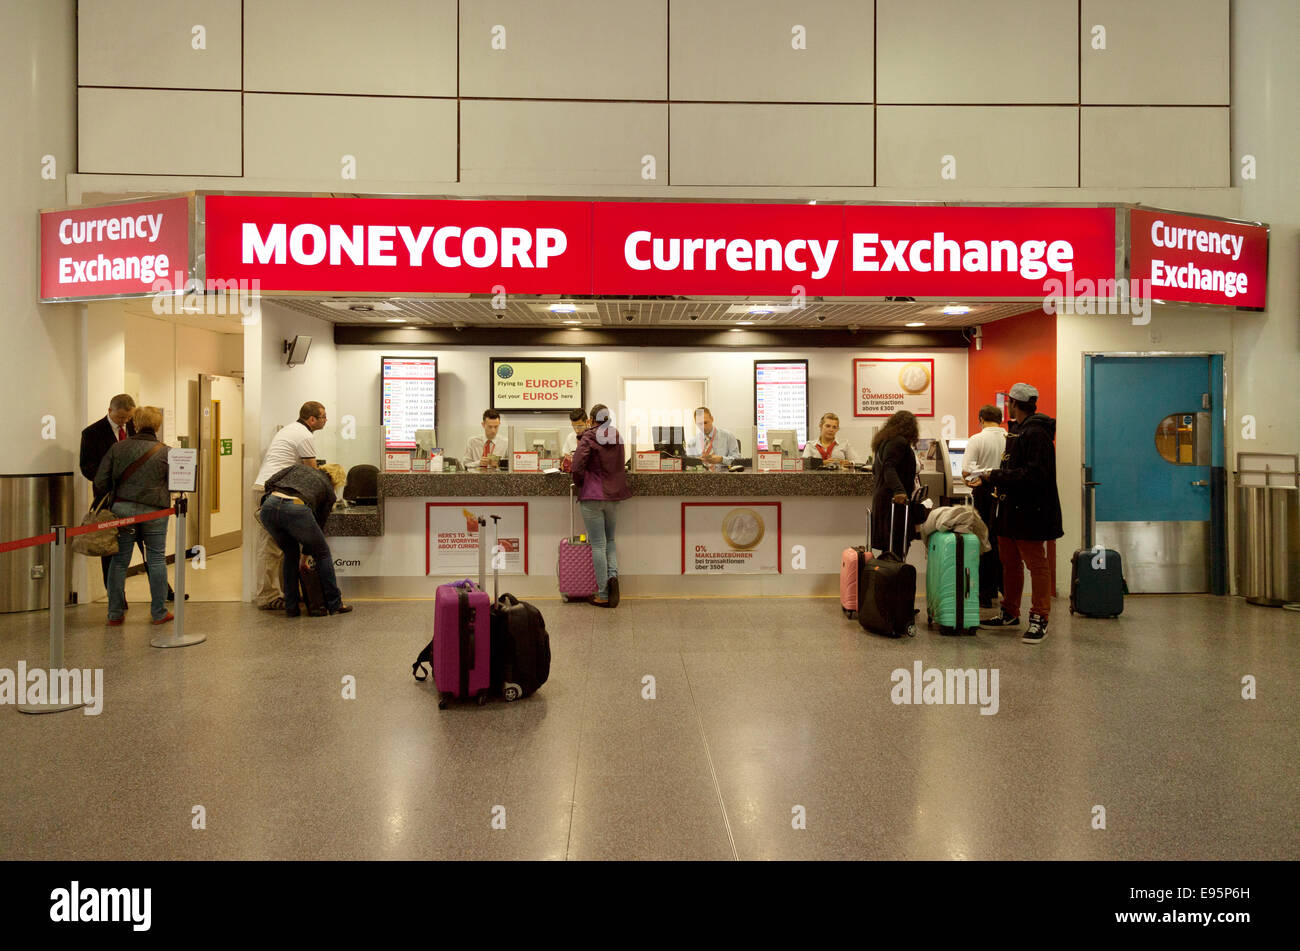 Foreign Exchange Airport Stock Photos Amp Foreign Exchange Airport Stock Images Alamy